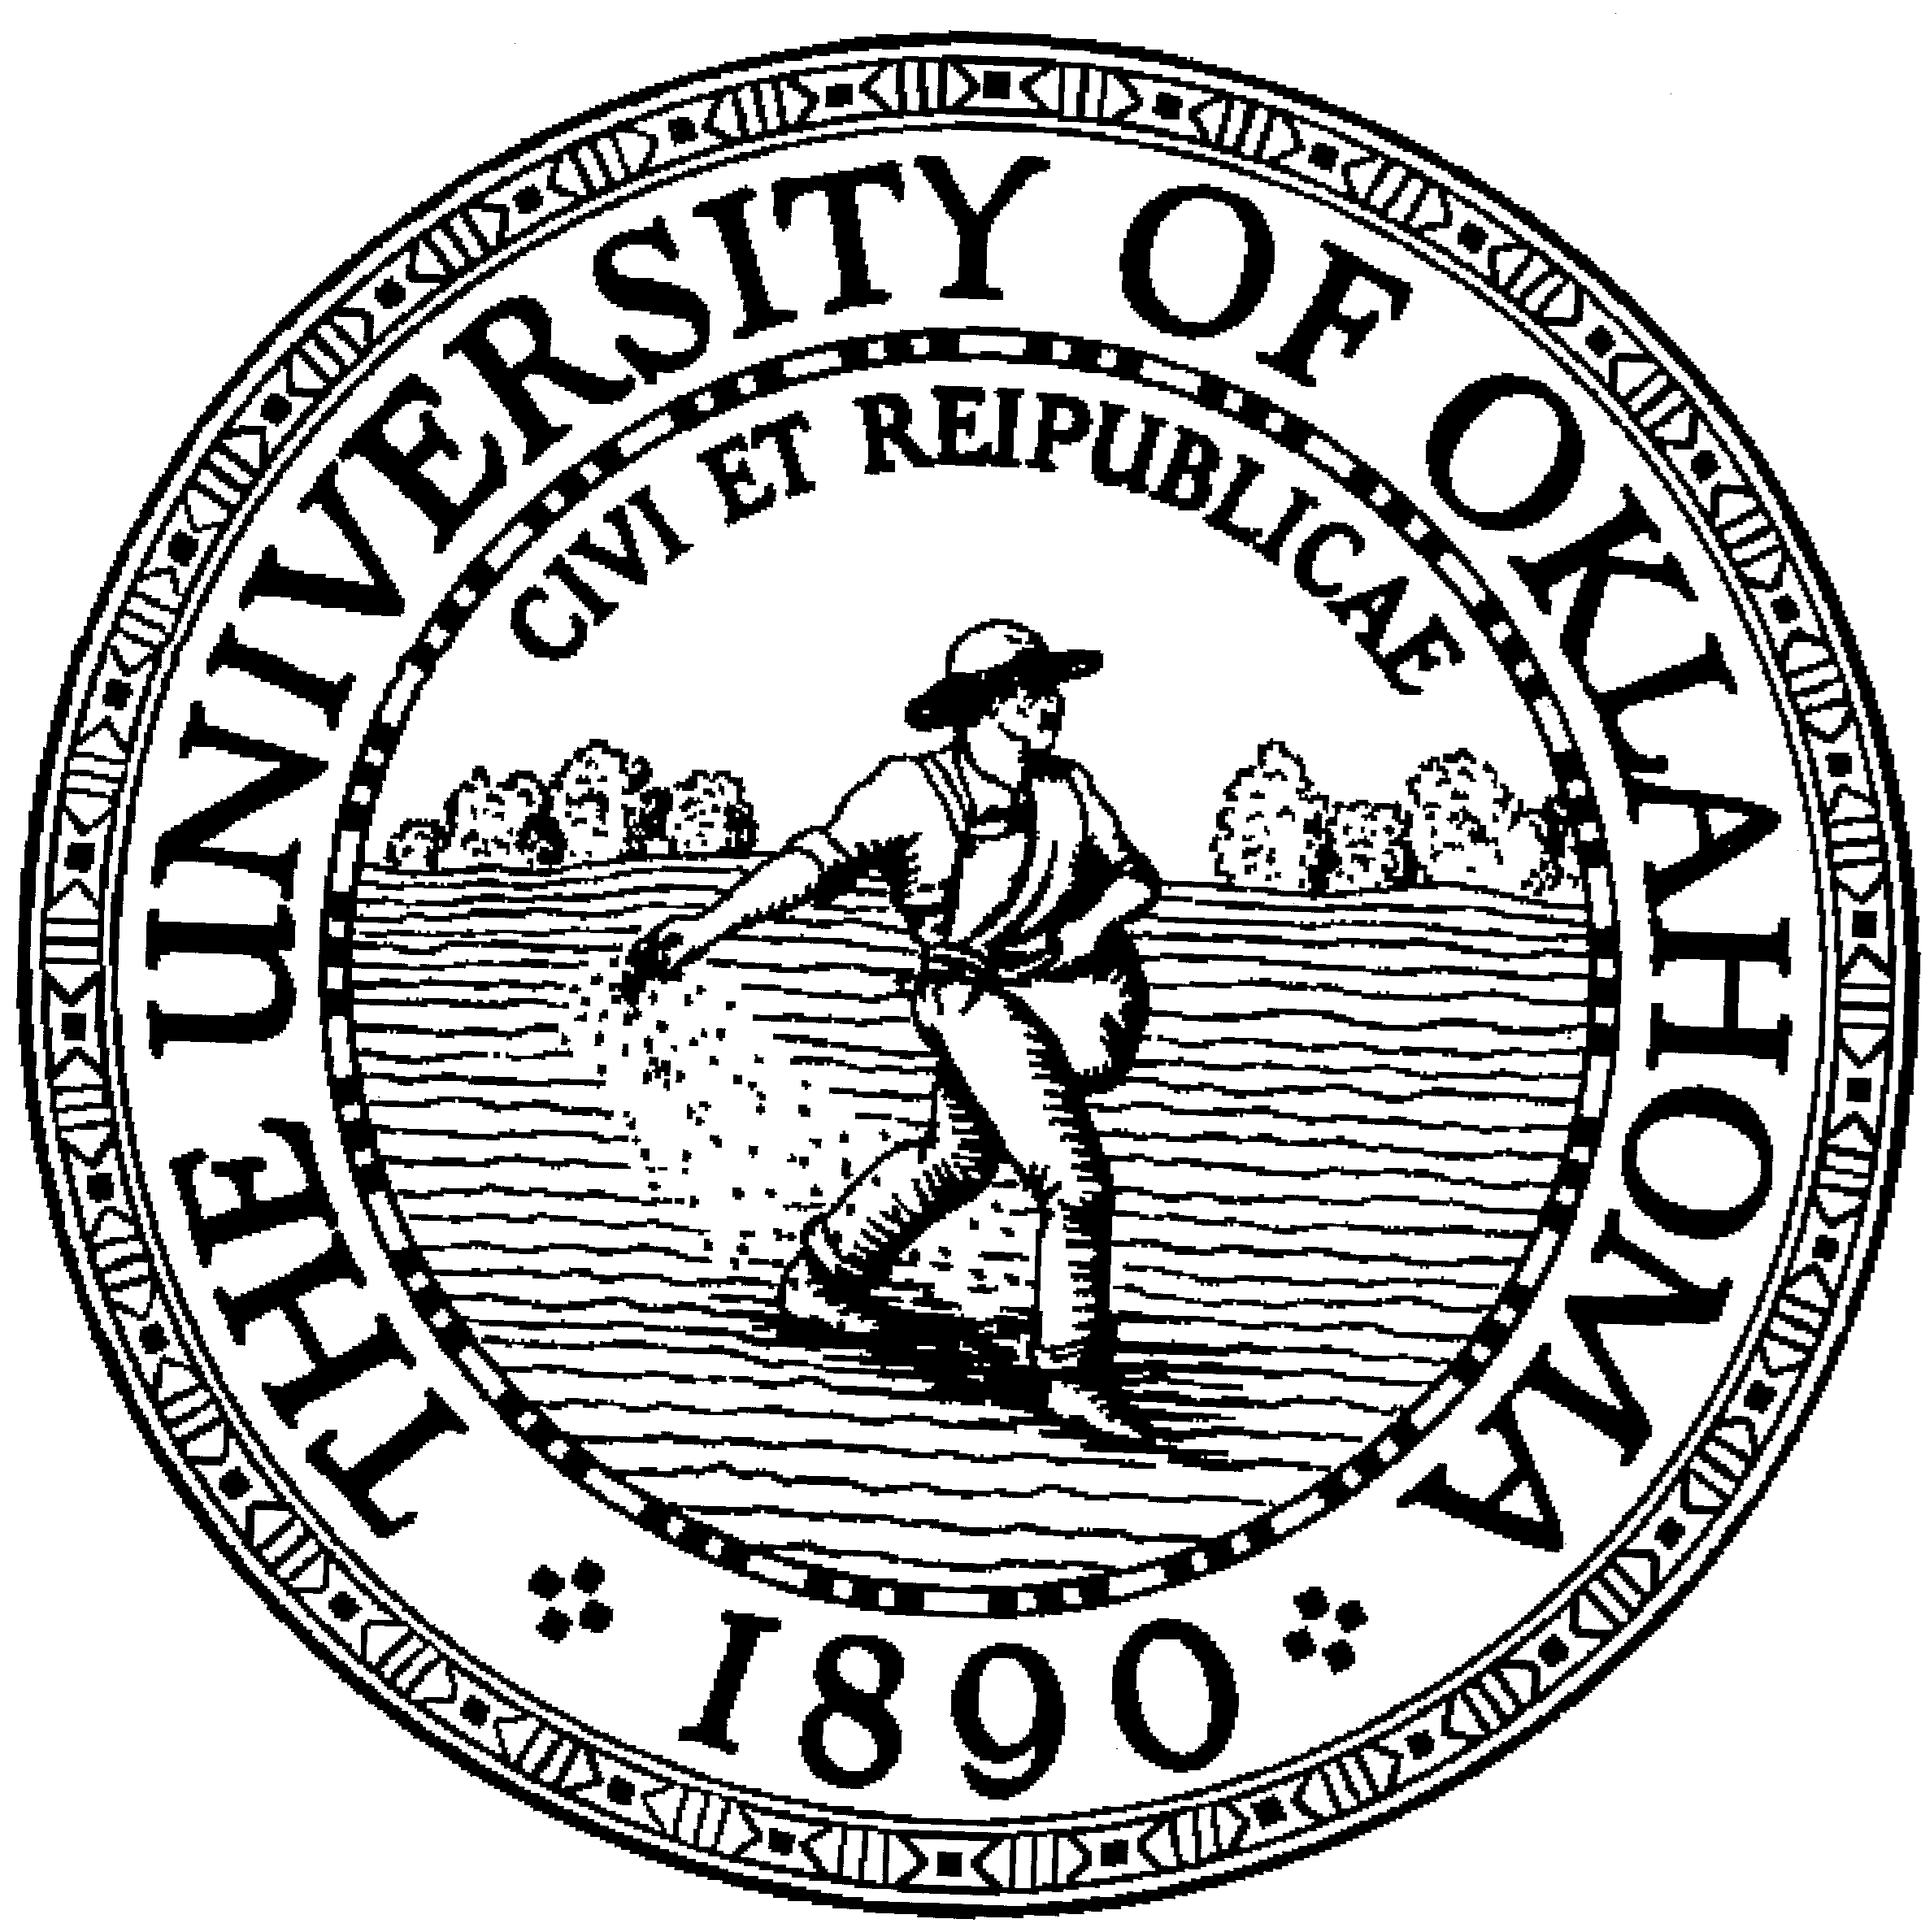 faculty positions full time tenure track or non tenure track Home Health Care Resume Objective university of oklahoma college of nursing